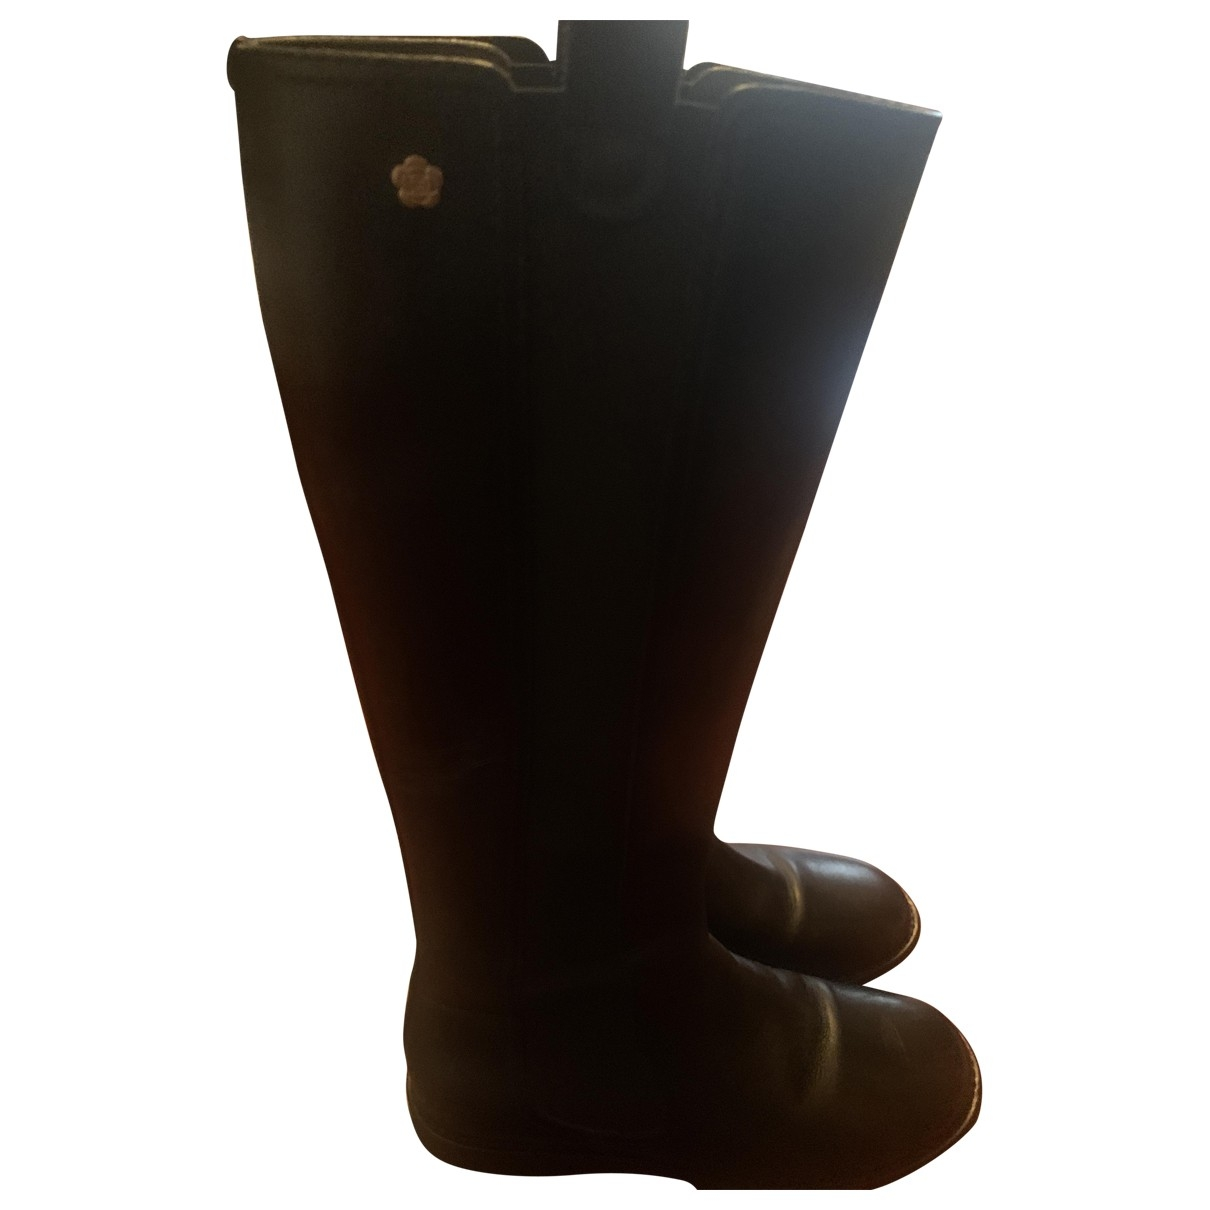 Chanel \N Black Leather Boots for Women 4.5 UK